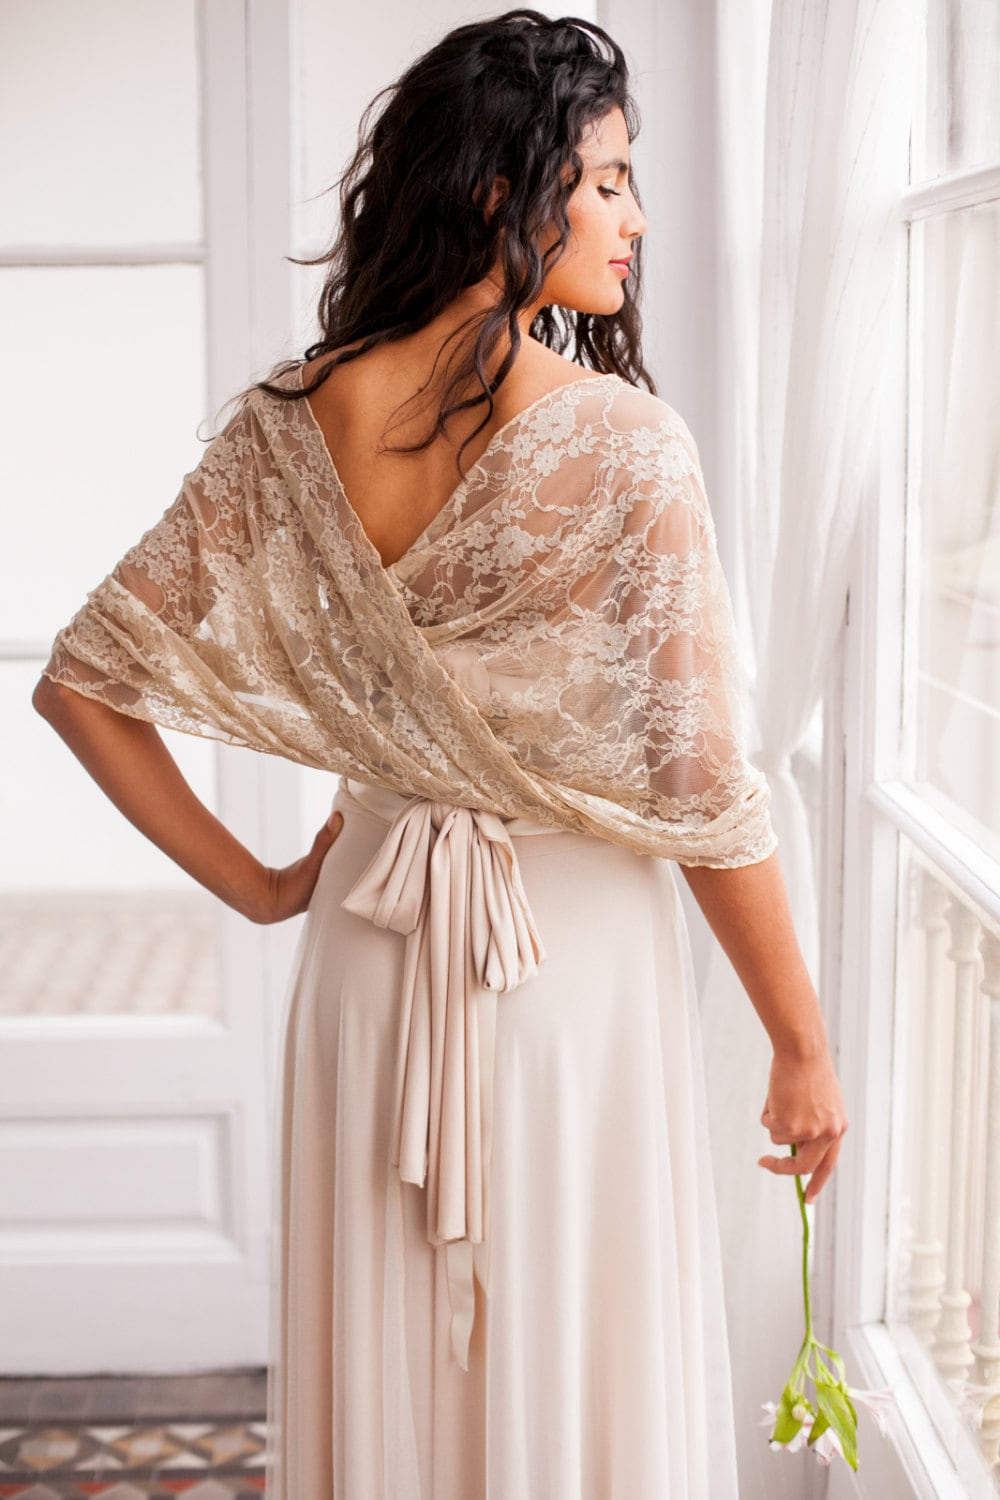 Wedding Shawl Wedding Lace Shawl Wedding Cover Up Lace